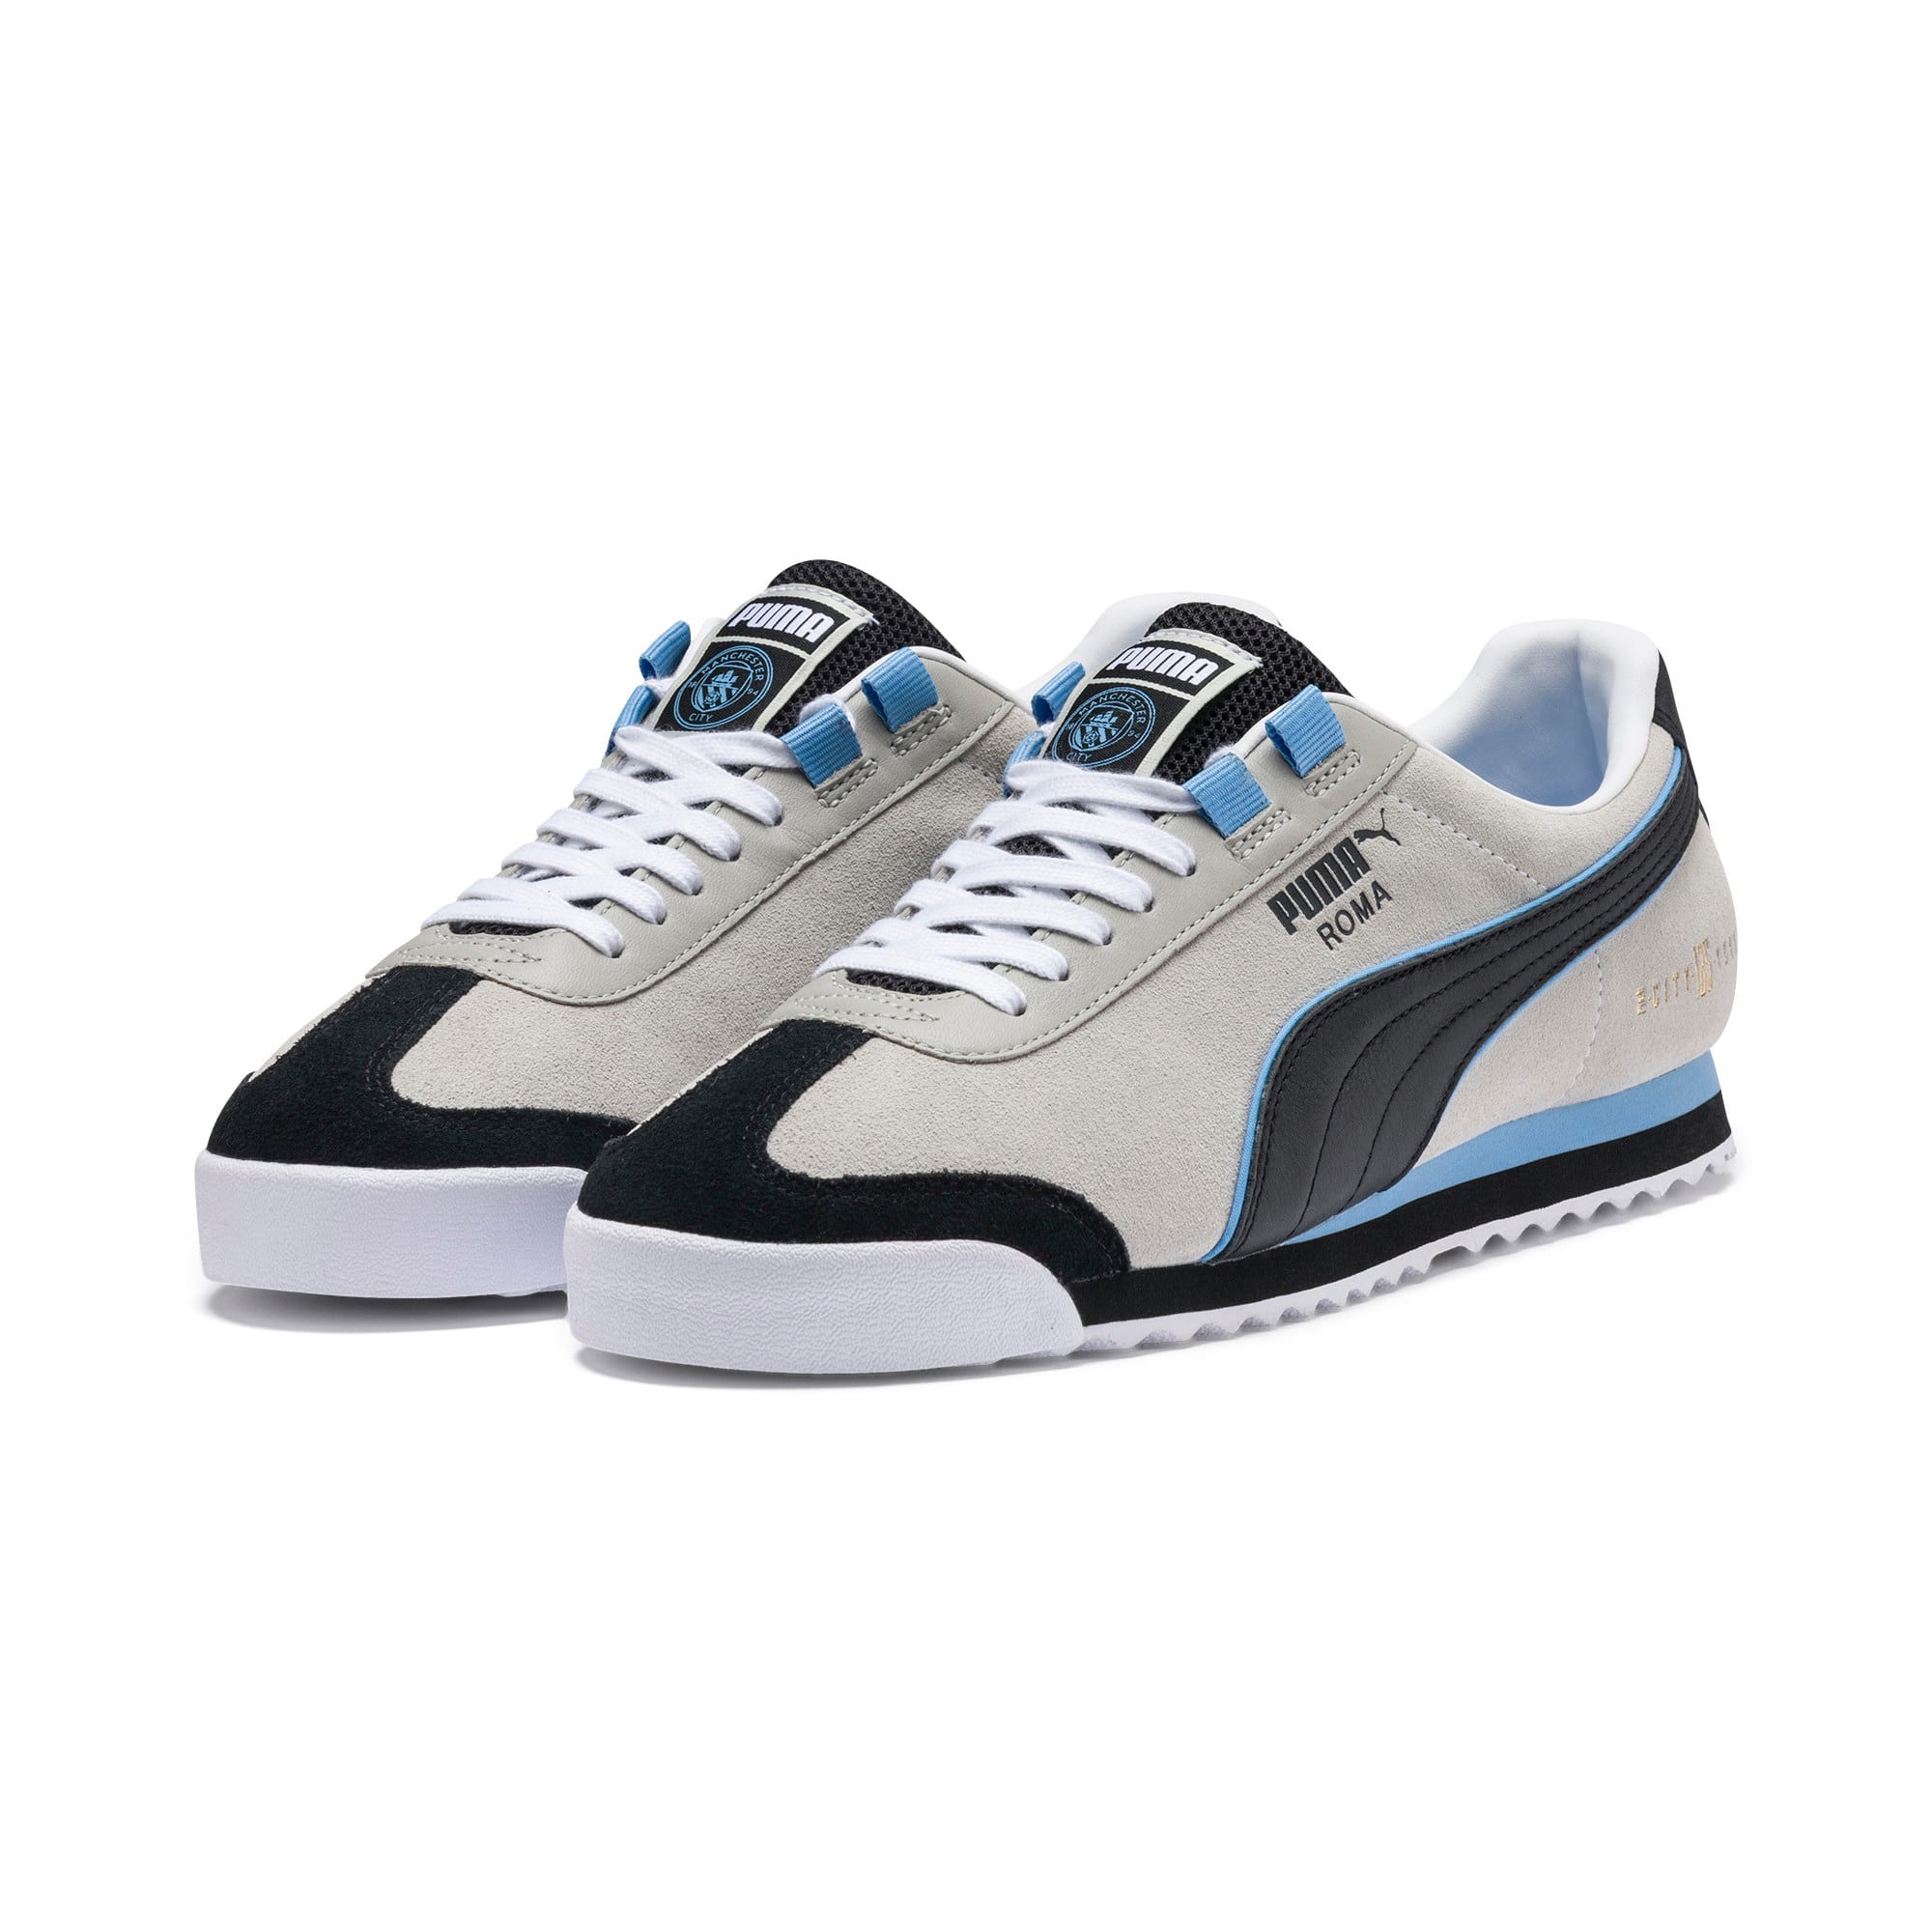 Thumbnail 2 of Roma x Manchester City Trainers, Gray Violet-Team Light Blue, medium